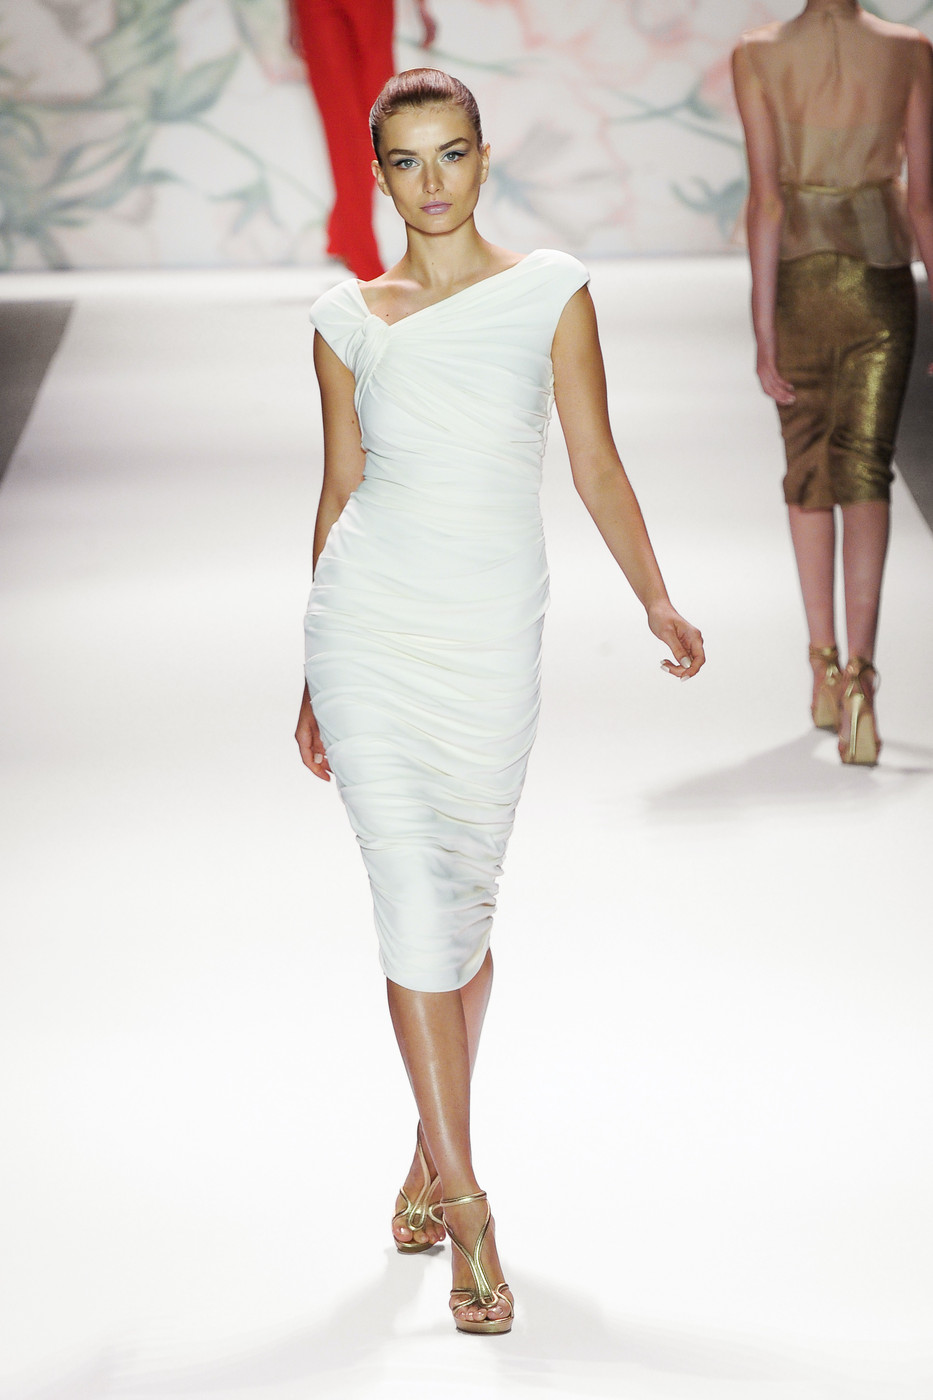 via fashioned by love | Moique Lhuillier Spring/Summer 2011 White